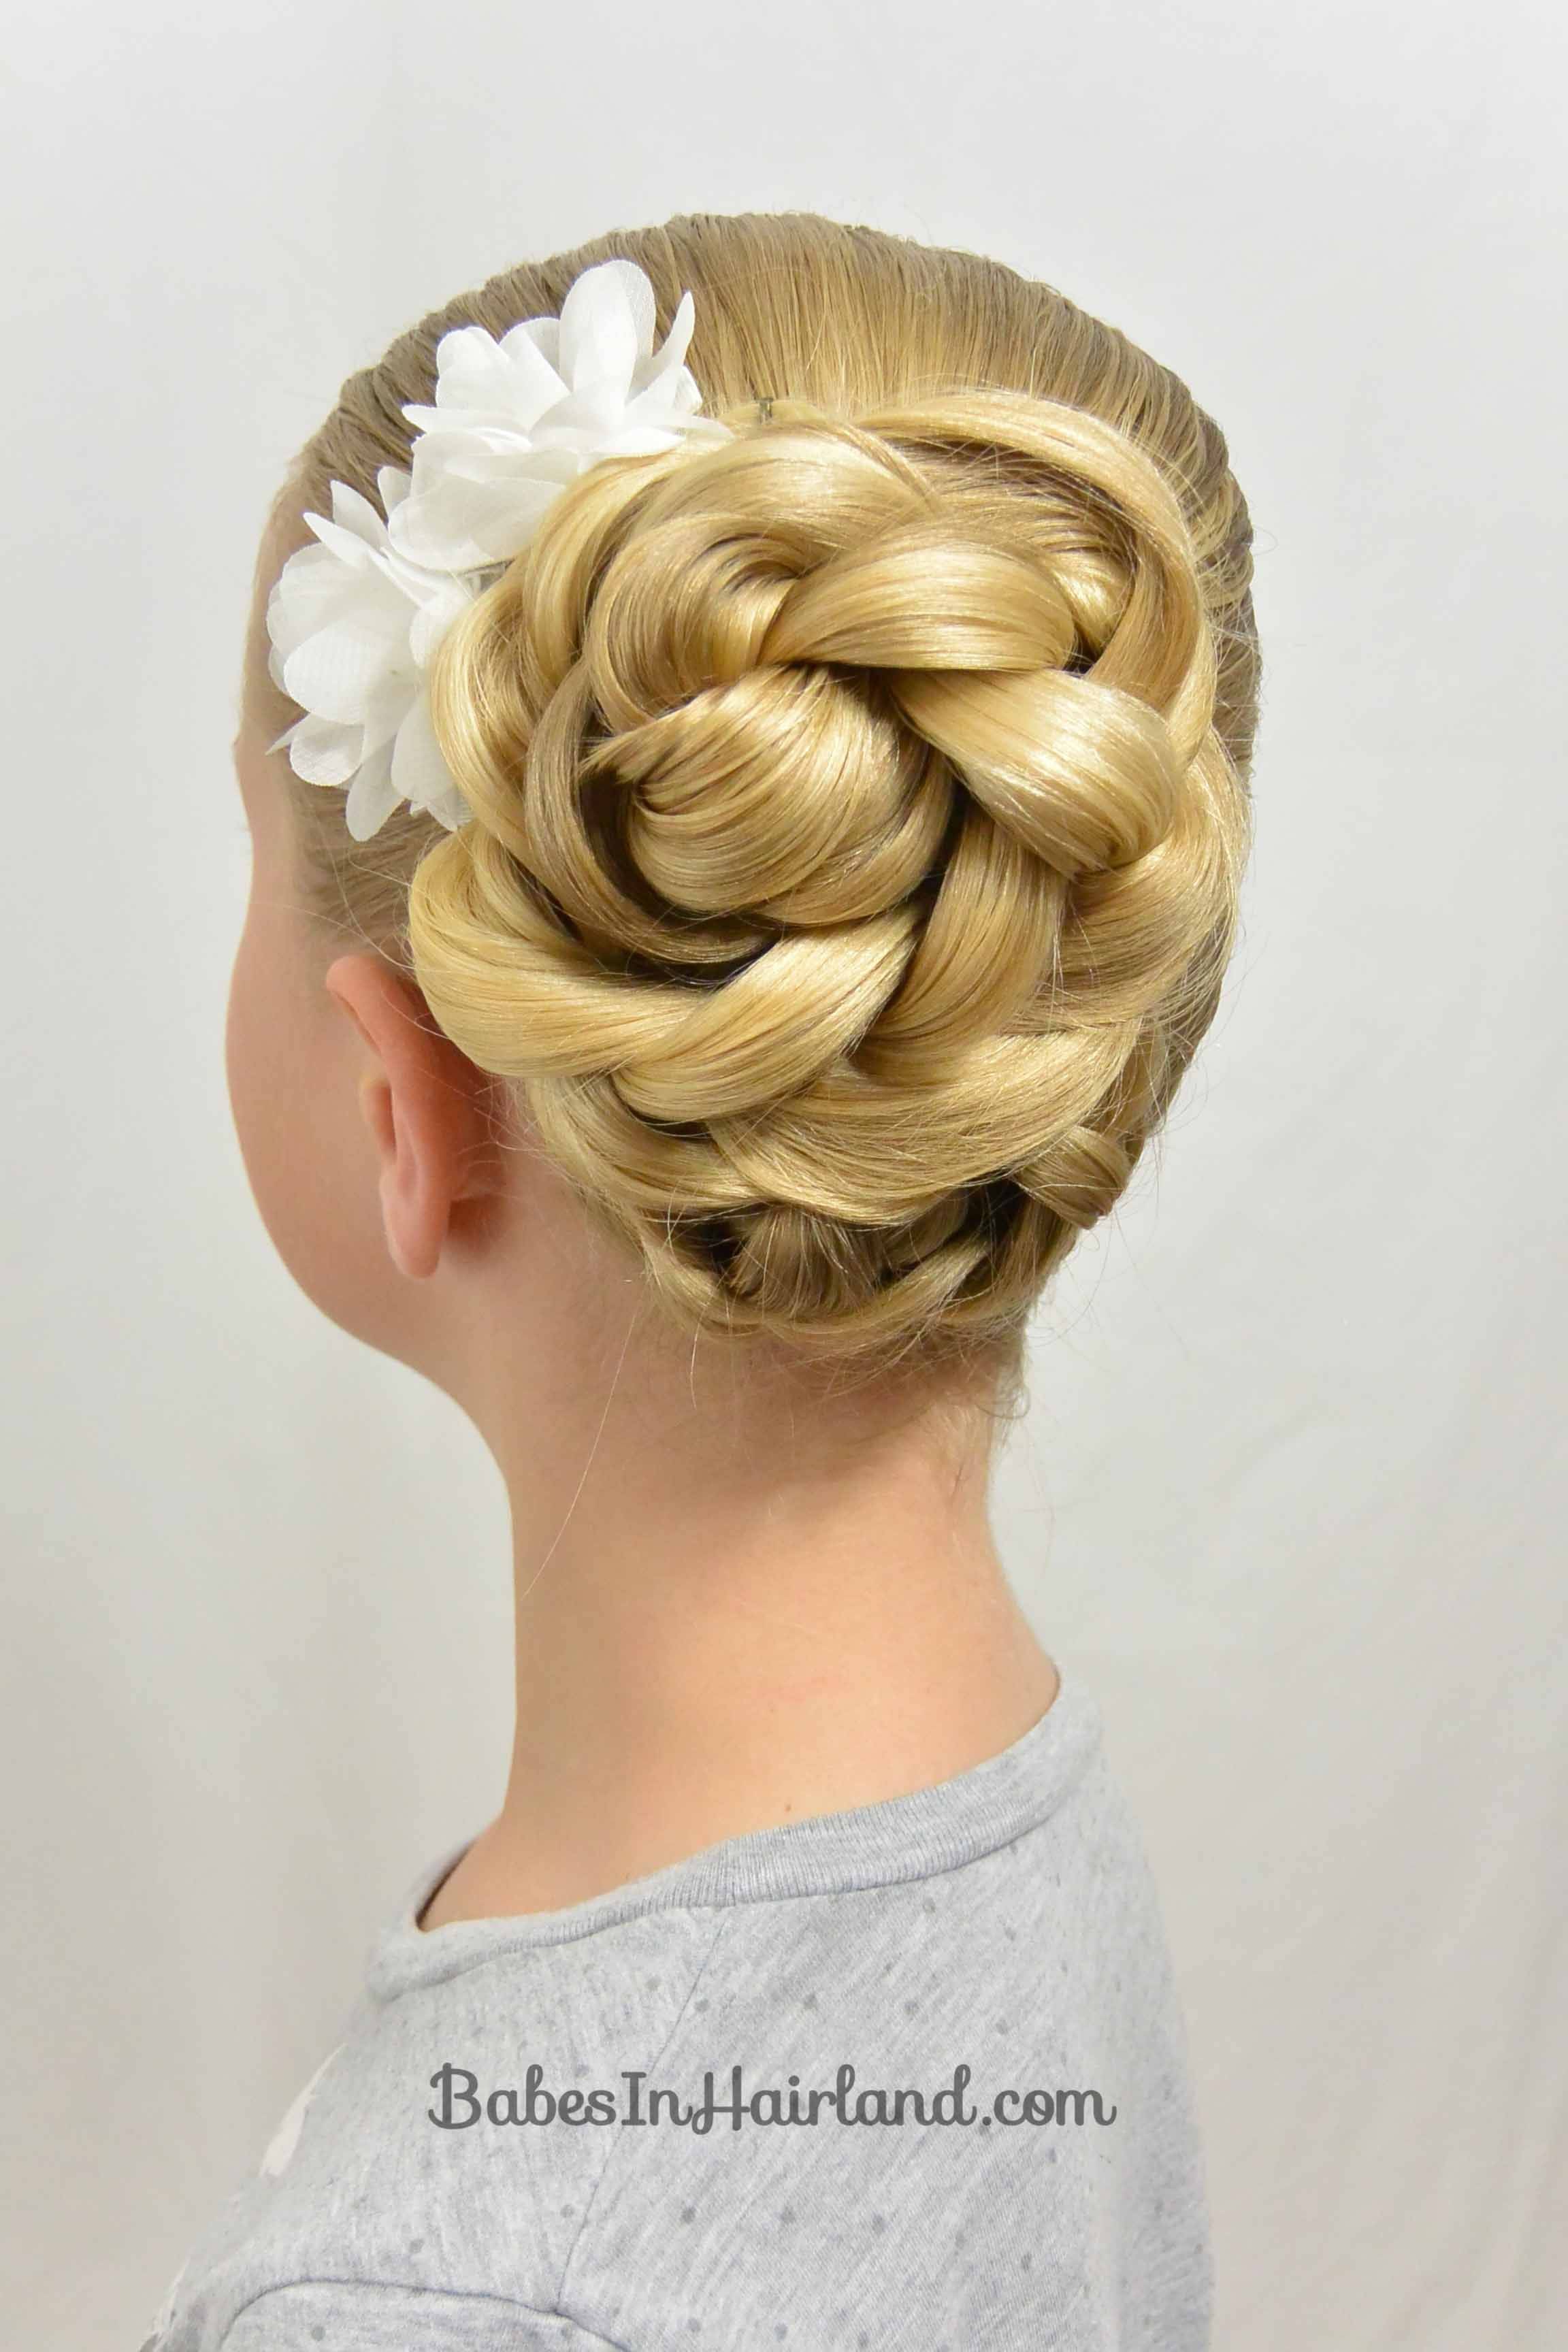 Easy easter updo and a hair trick babes in hairland peinados